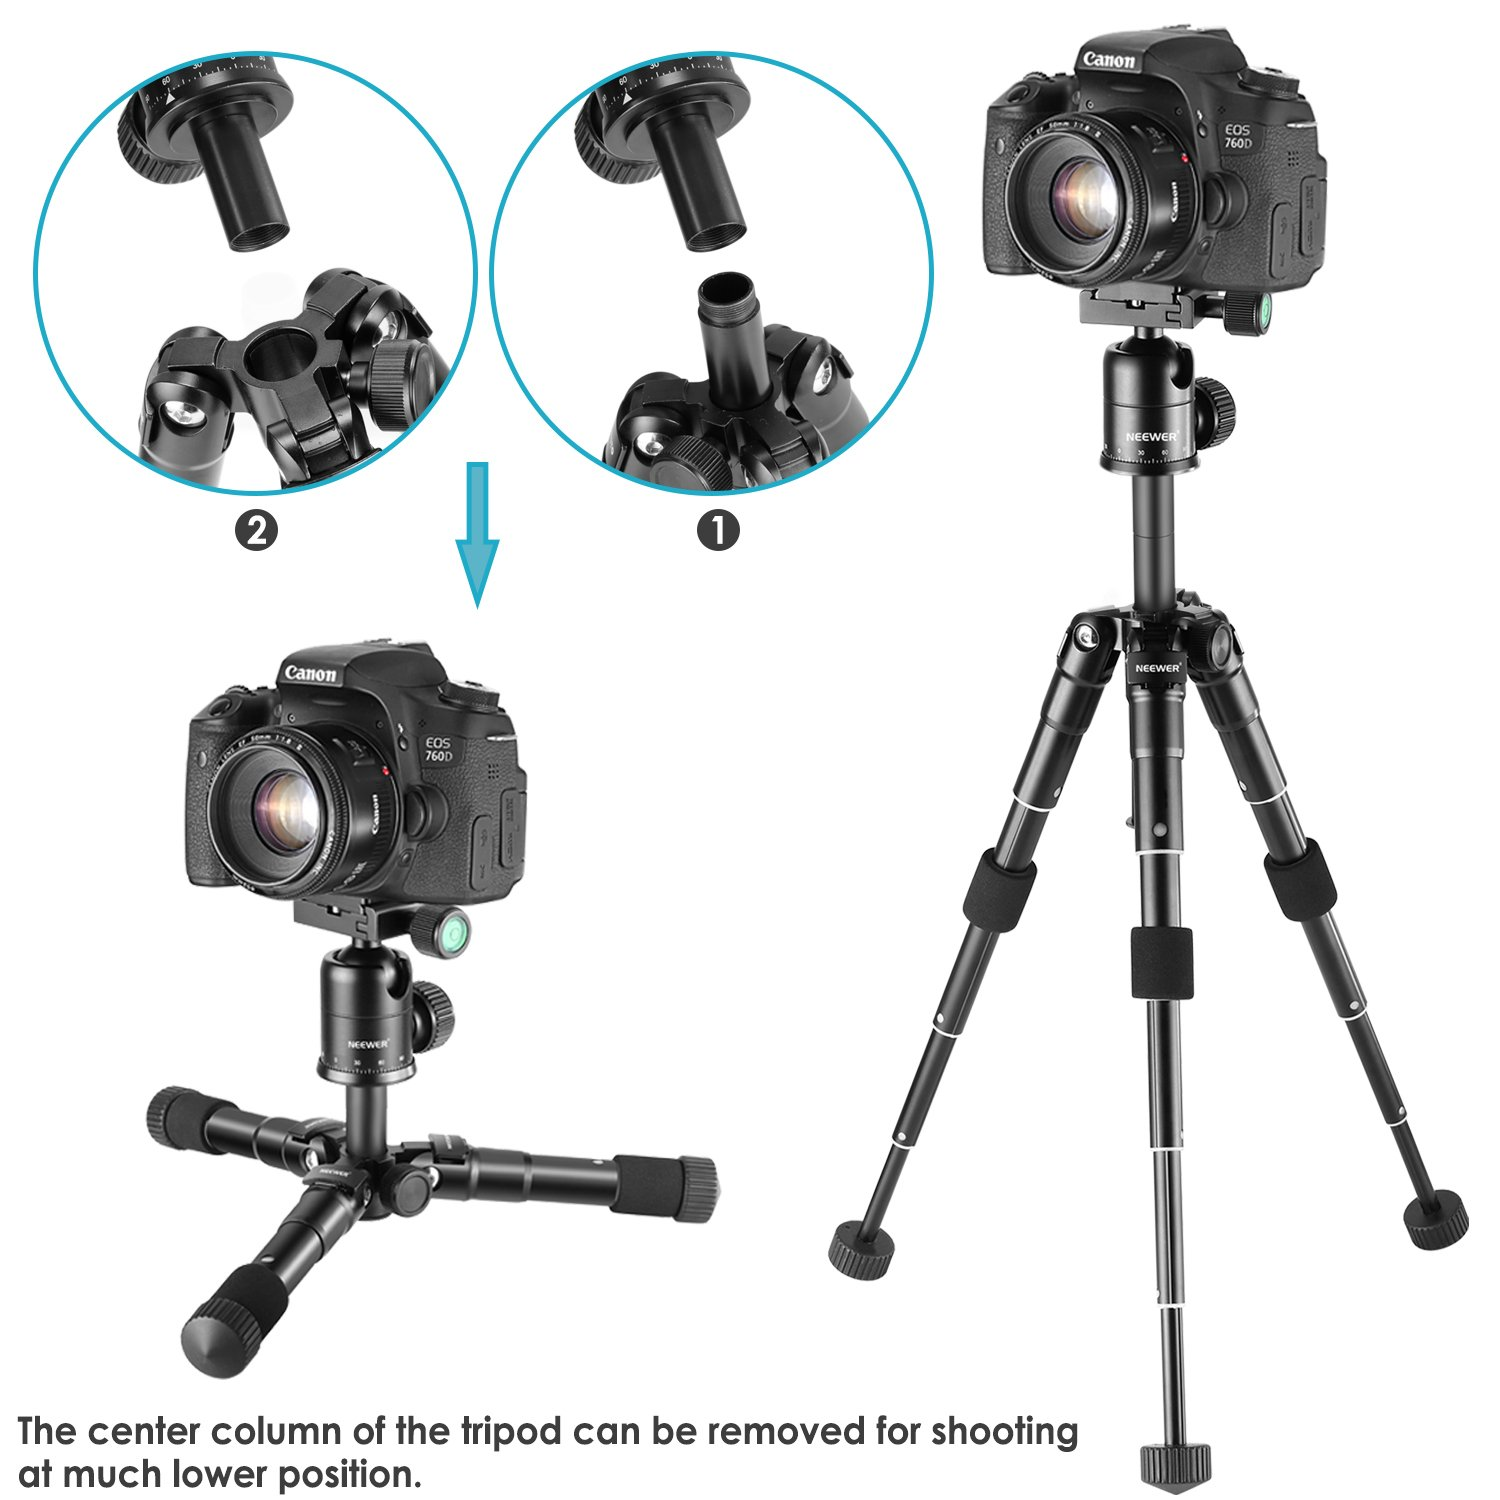 Bag for DSLR Camera Neewer 20 inches//50 centimeters Portable Compact Desktop Macro Mini Tripod with 360 Degree Ball Head,1//4 inches Quick Release Plate Video Camcorder up to 11 pounds//5 kilograms